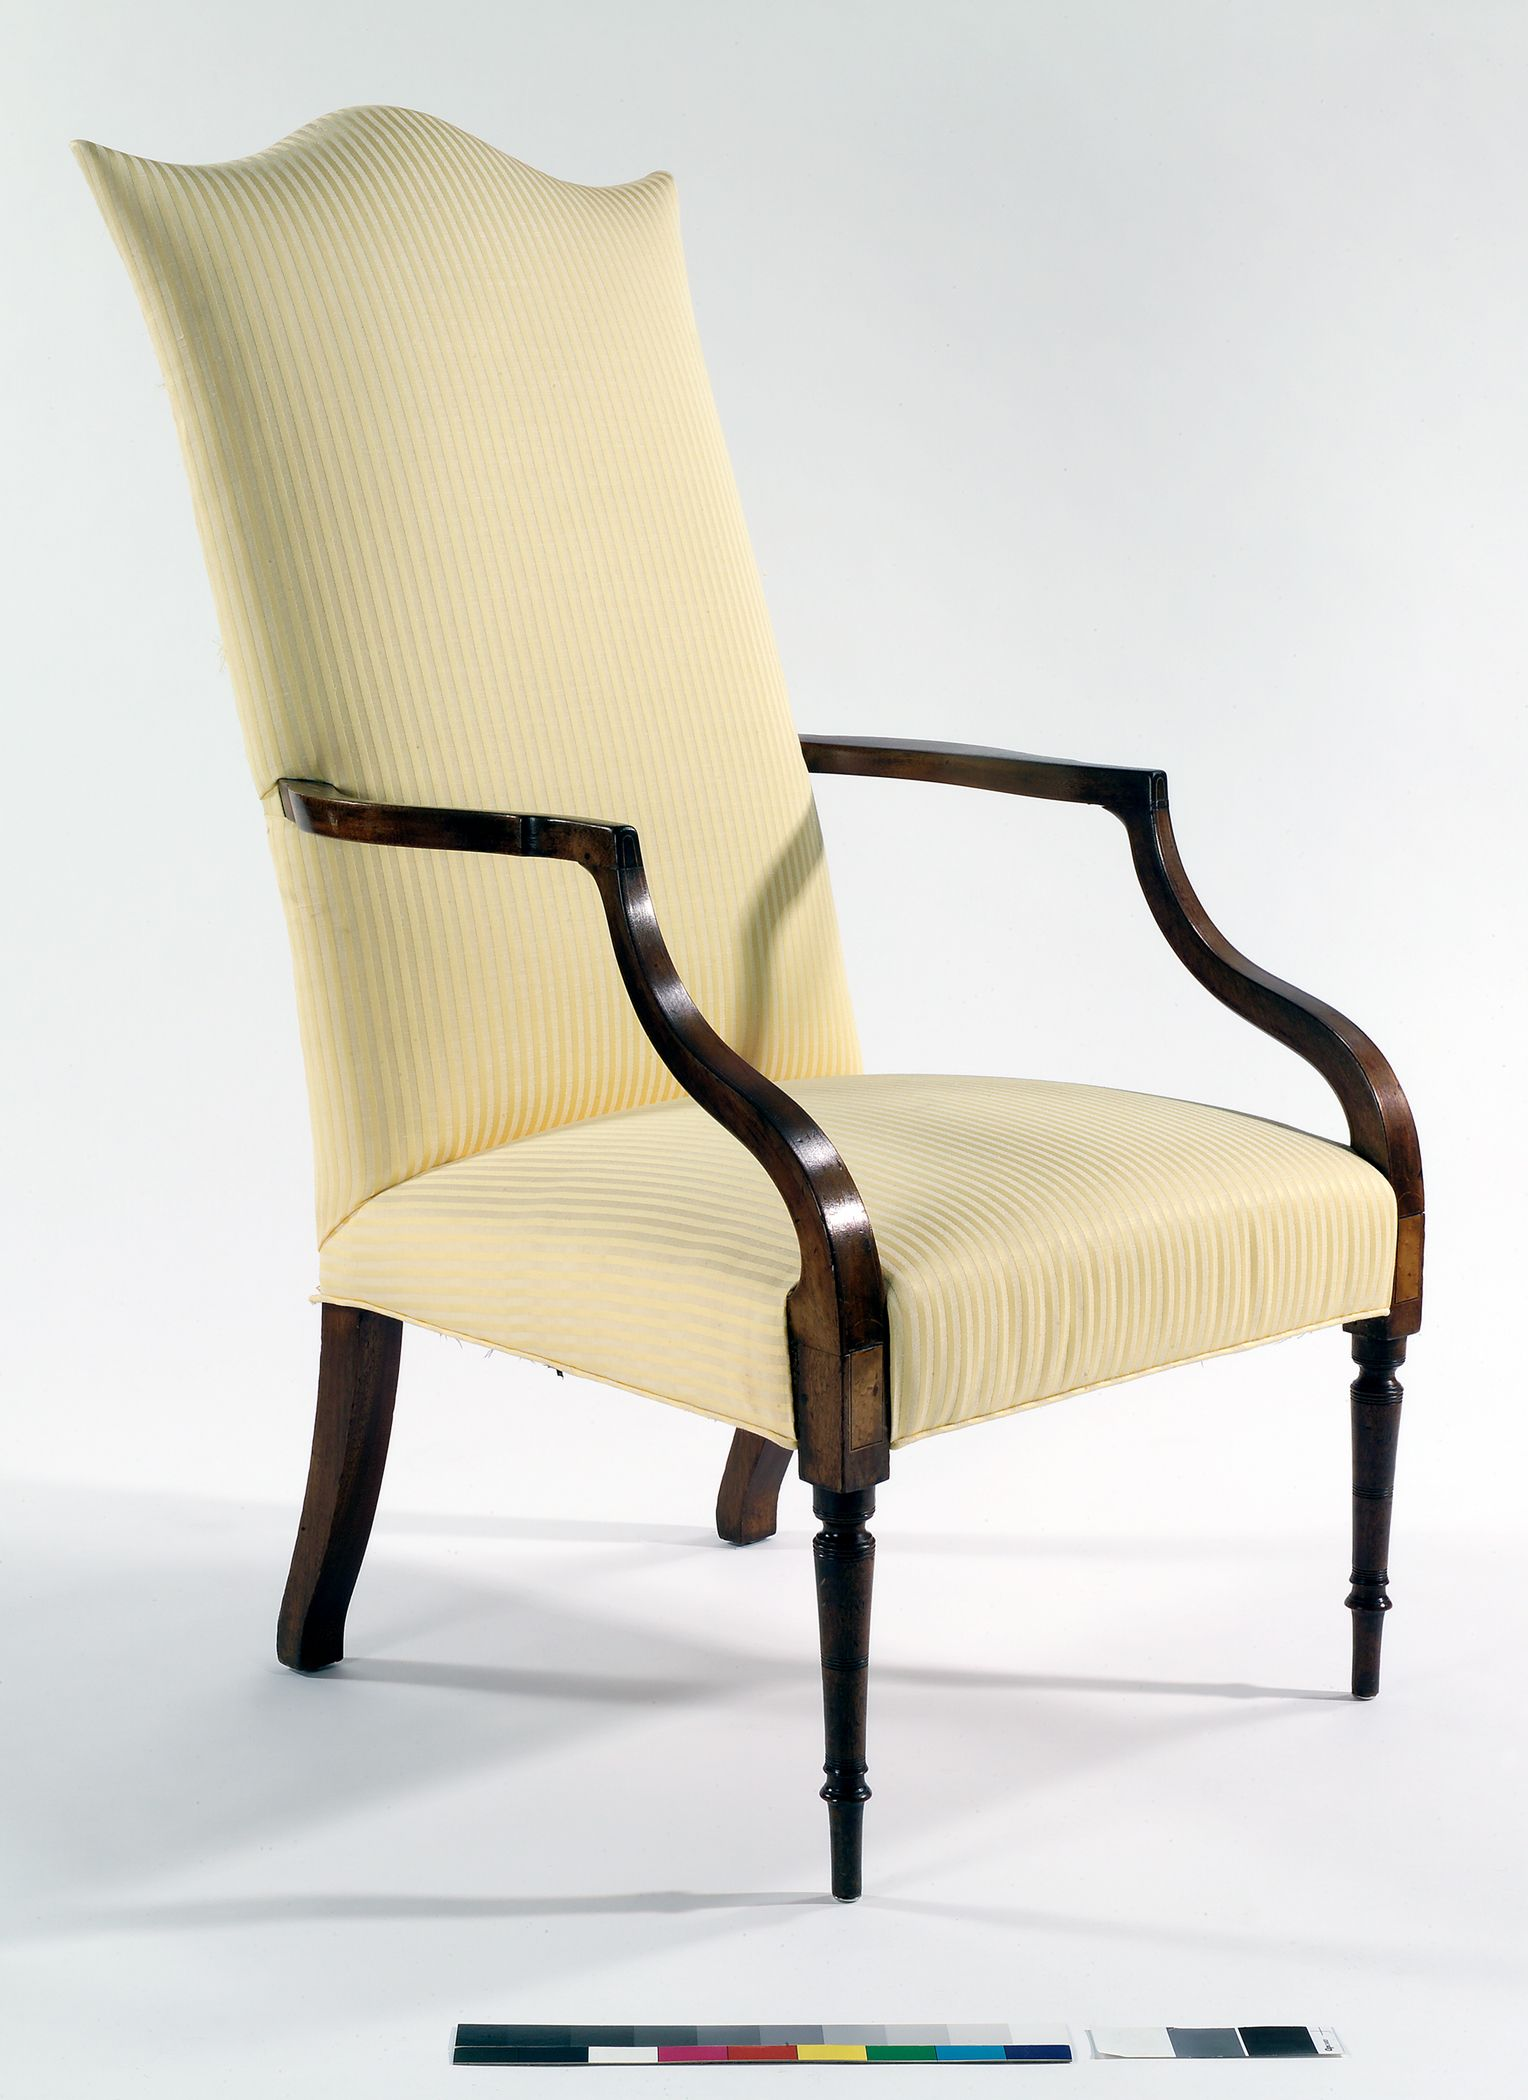 C1800 Federal Lolling Chair, Portsmouth, NH, Mah, 46t, Winterthur.